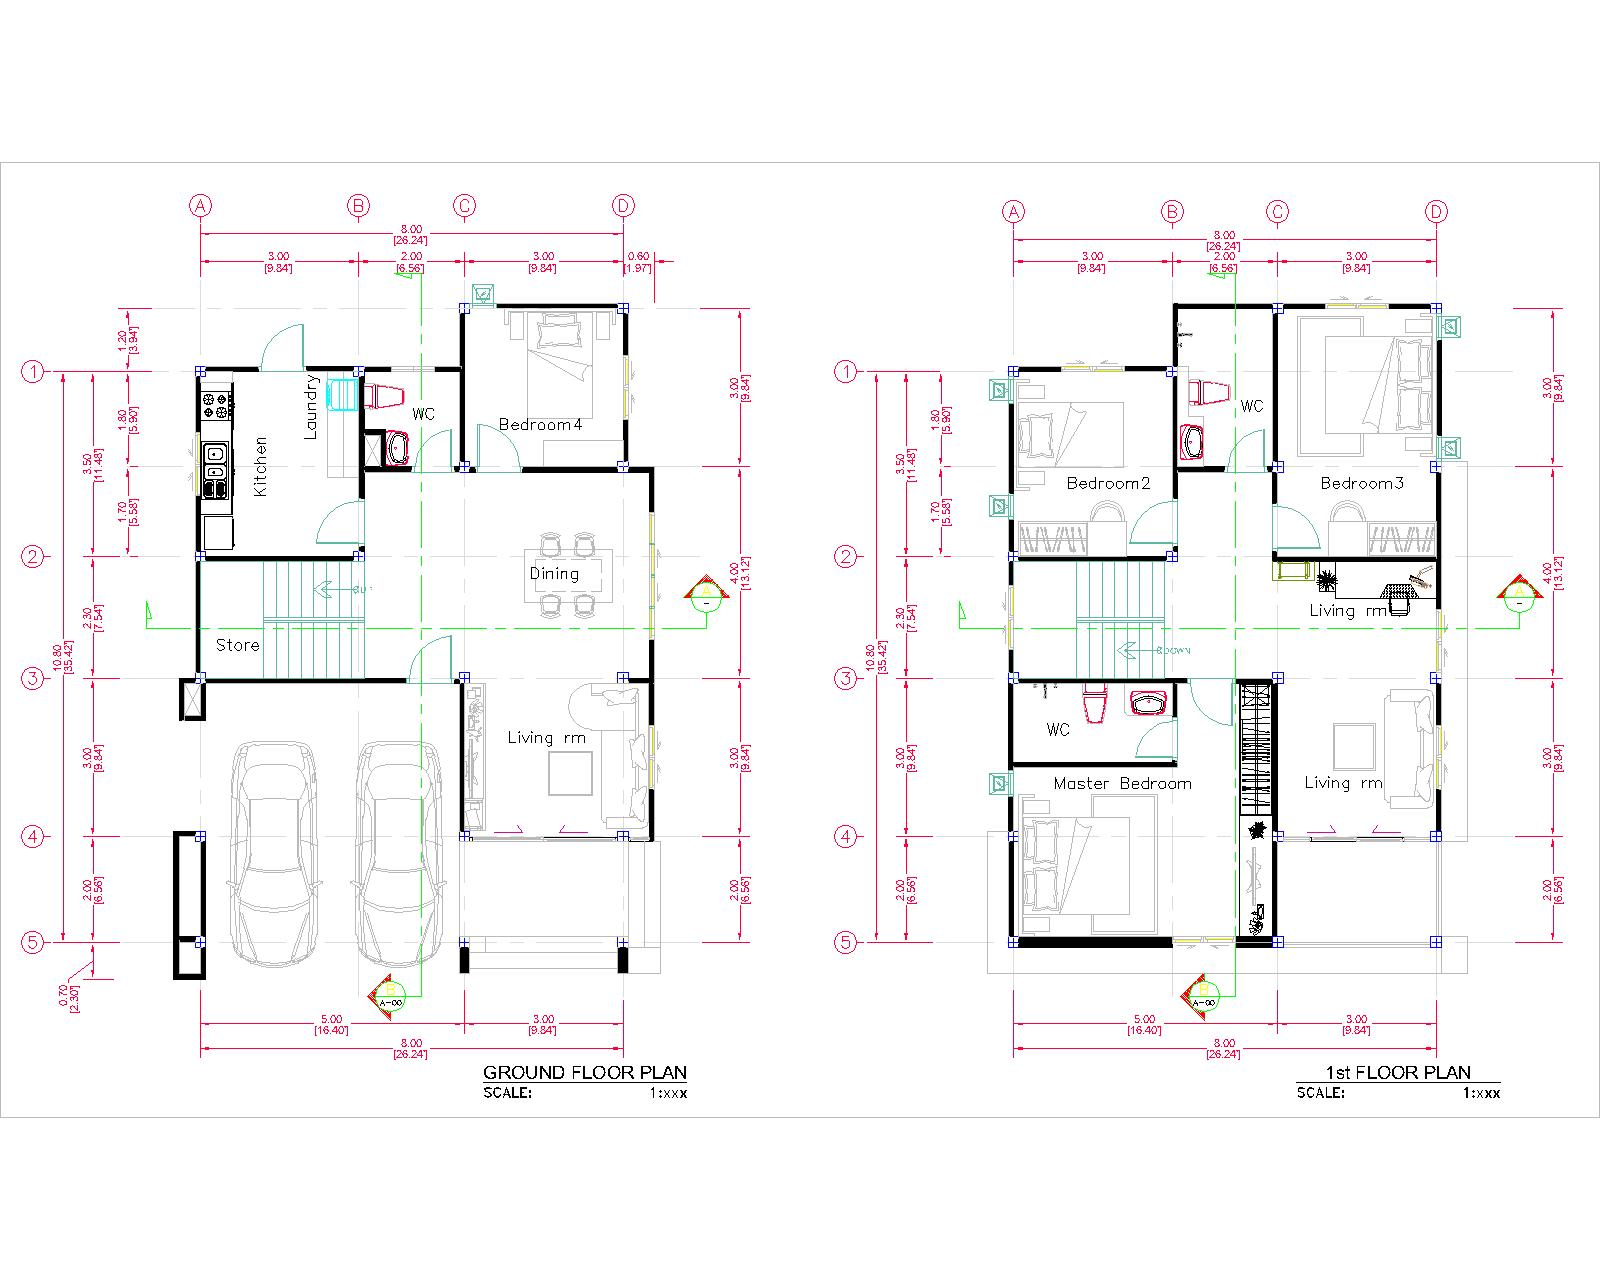 27x40 House Plans 8x10 Meters 4 Bedrooms floor plan